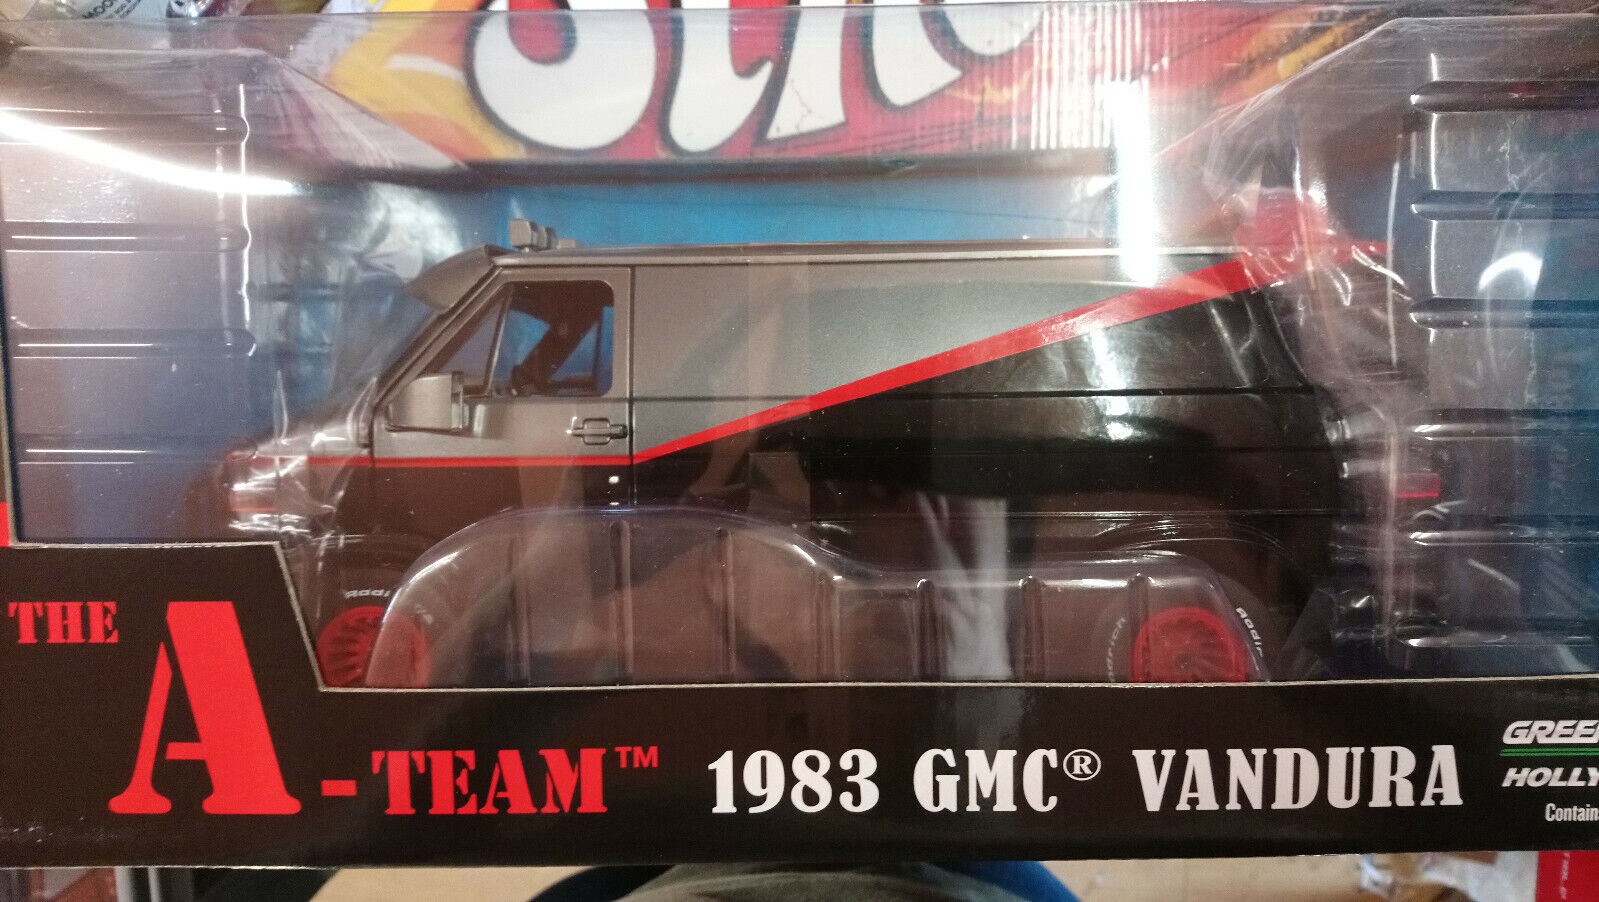 Greenlight Hollywood The A A A Team 1983 GMC Vandura 1 18 Limited Edition 83f62e